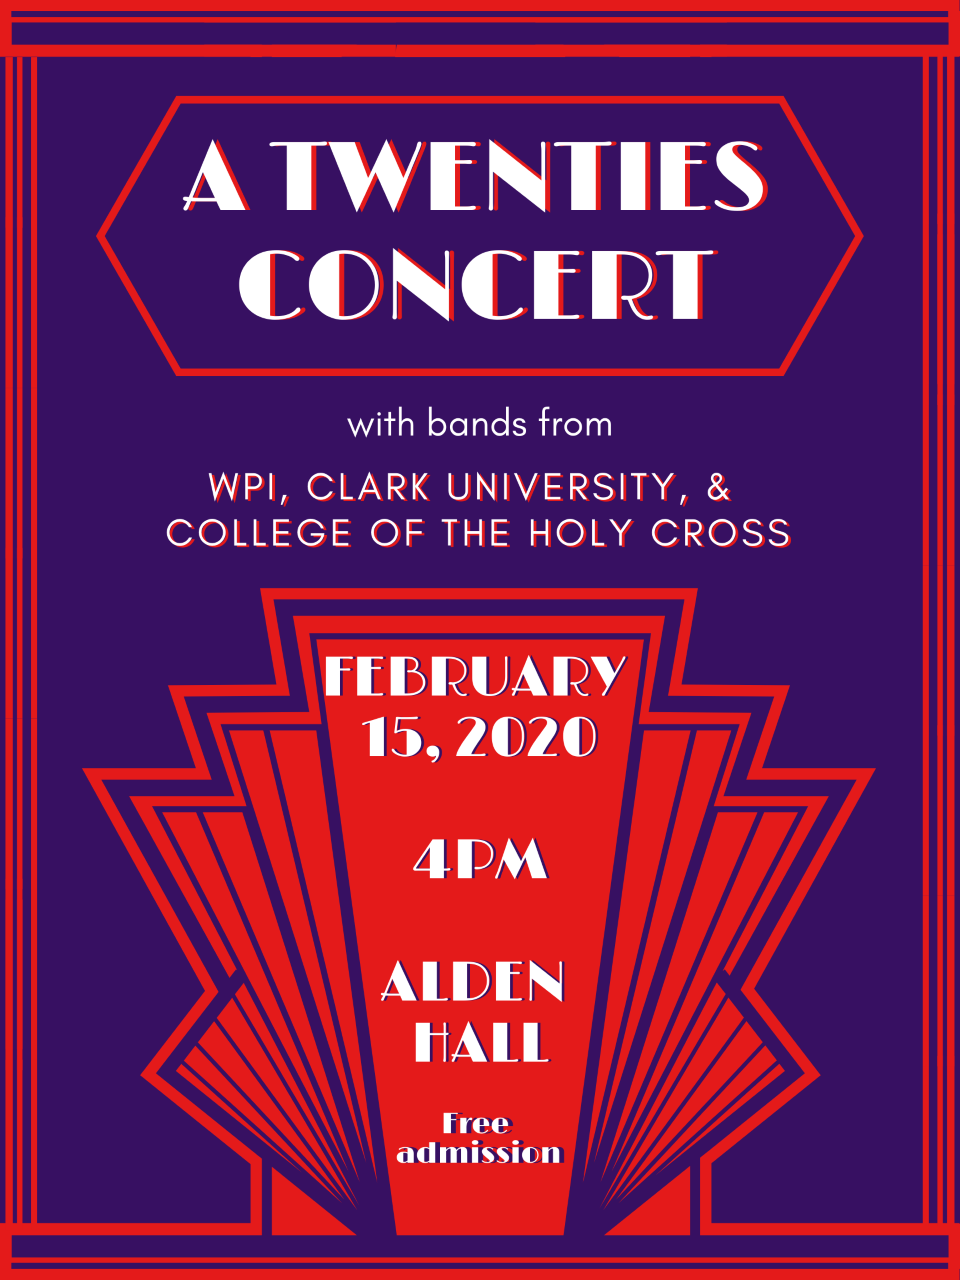 WPI Clark University College of the Holy Cross bands